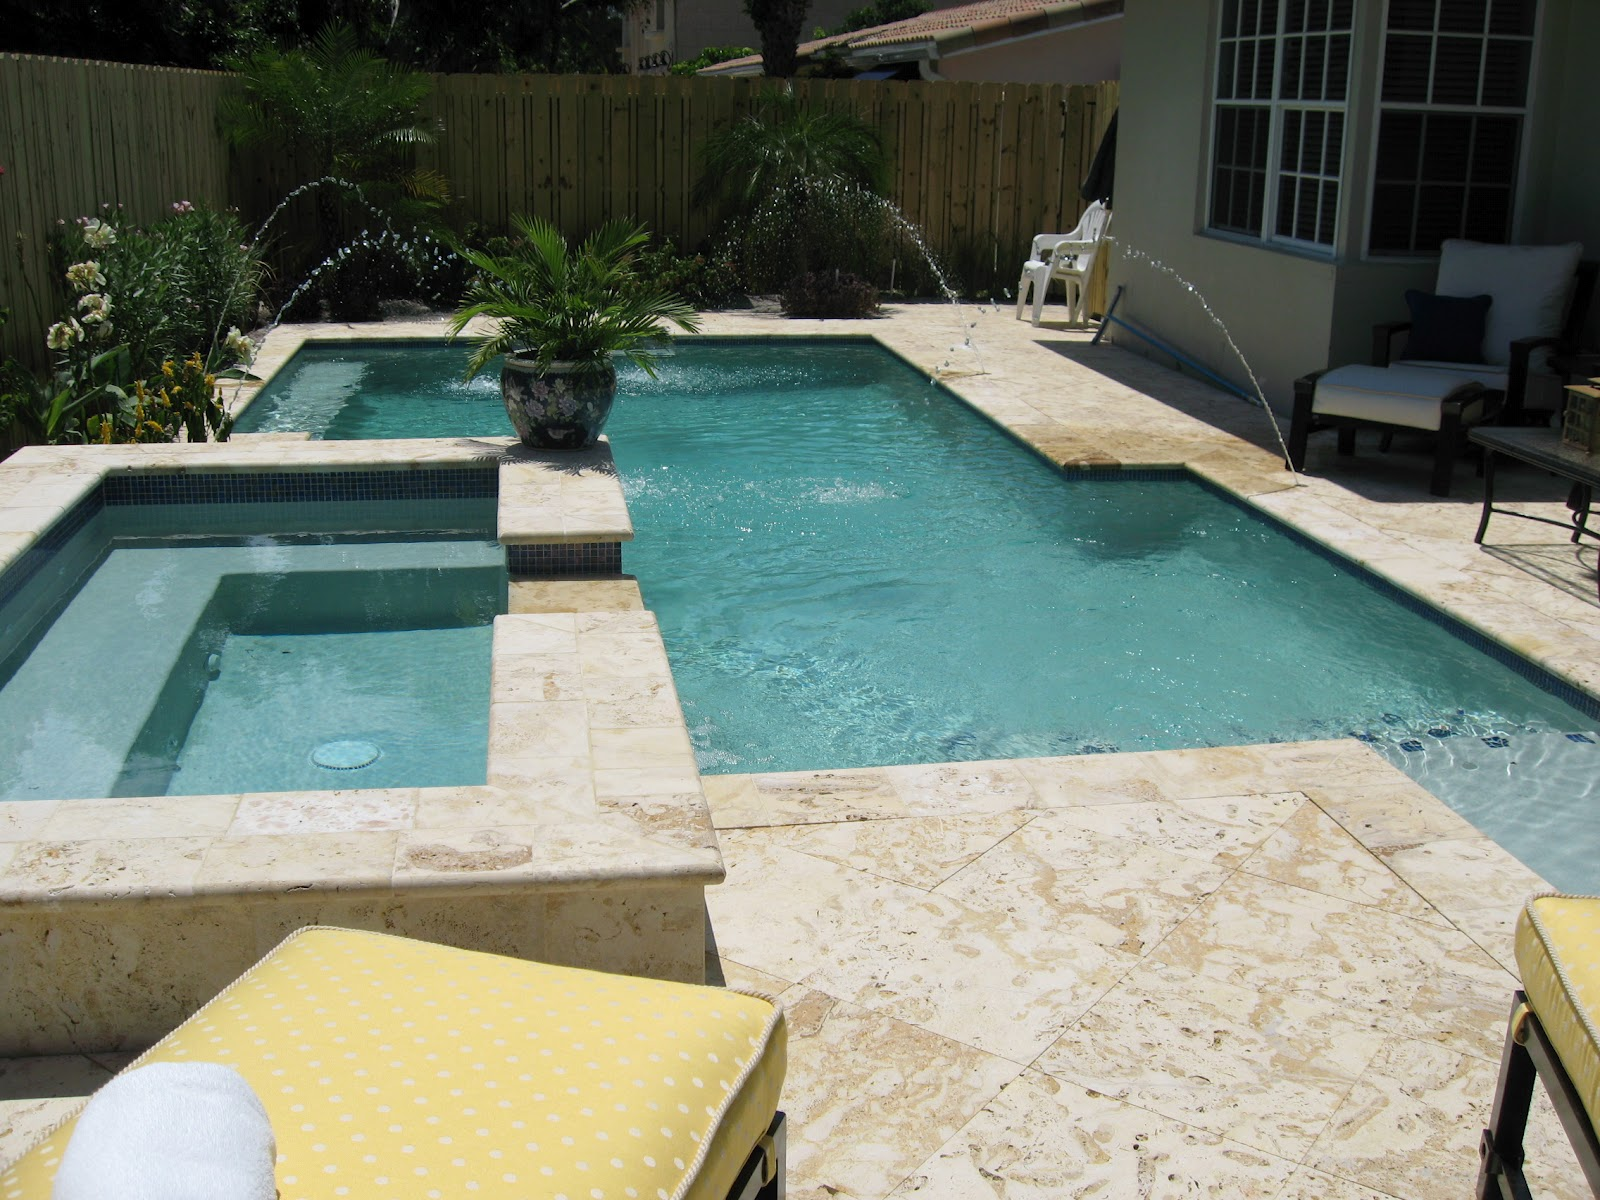 The Most Hening And Talked About Pool Decks Patios Are Undoubtedly Those Built Adorned With Pavestone Tiles Among Best Quality